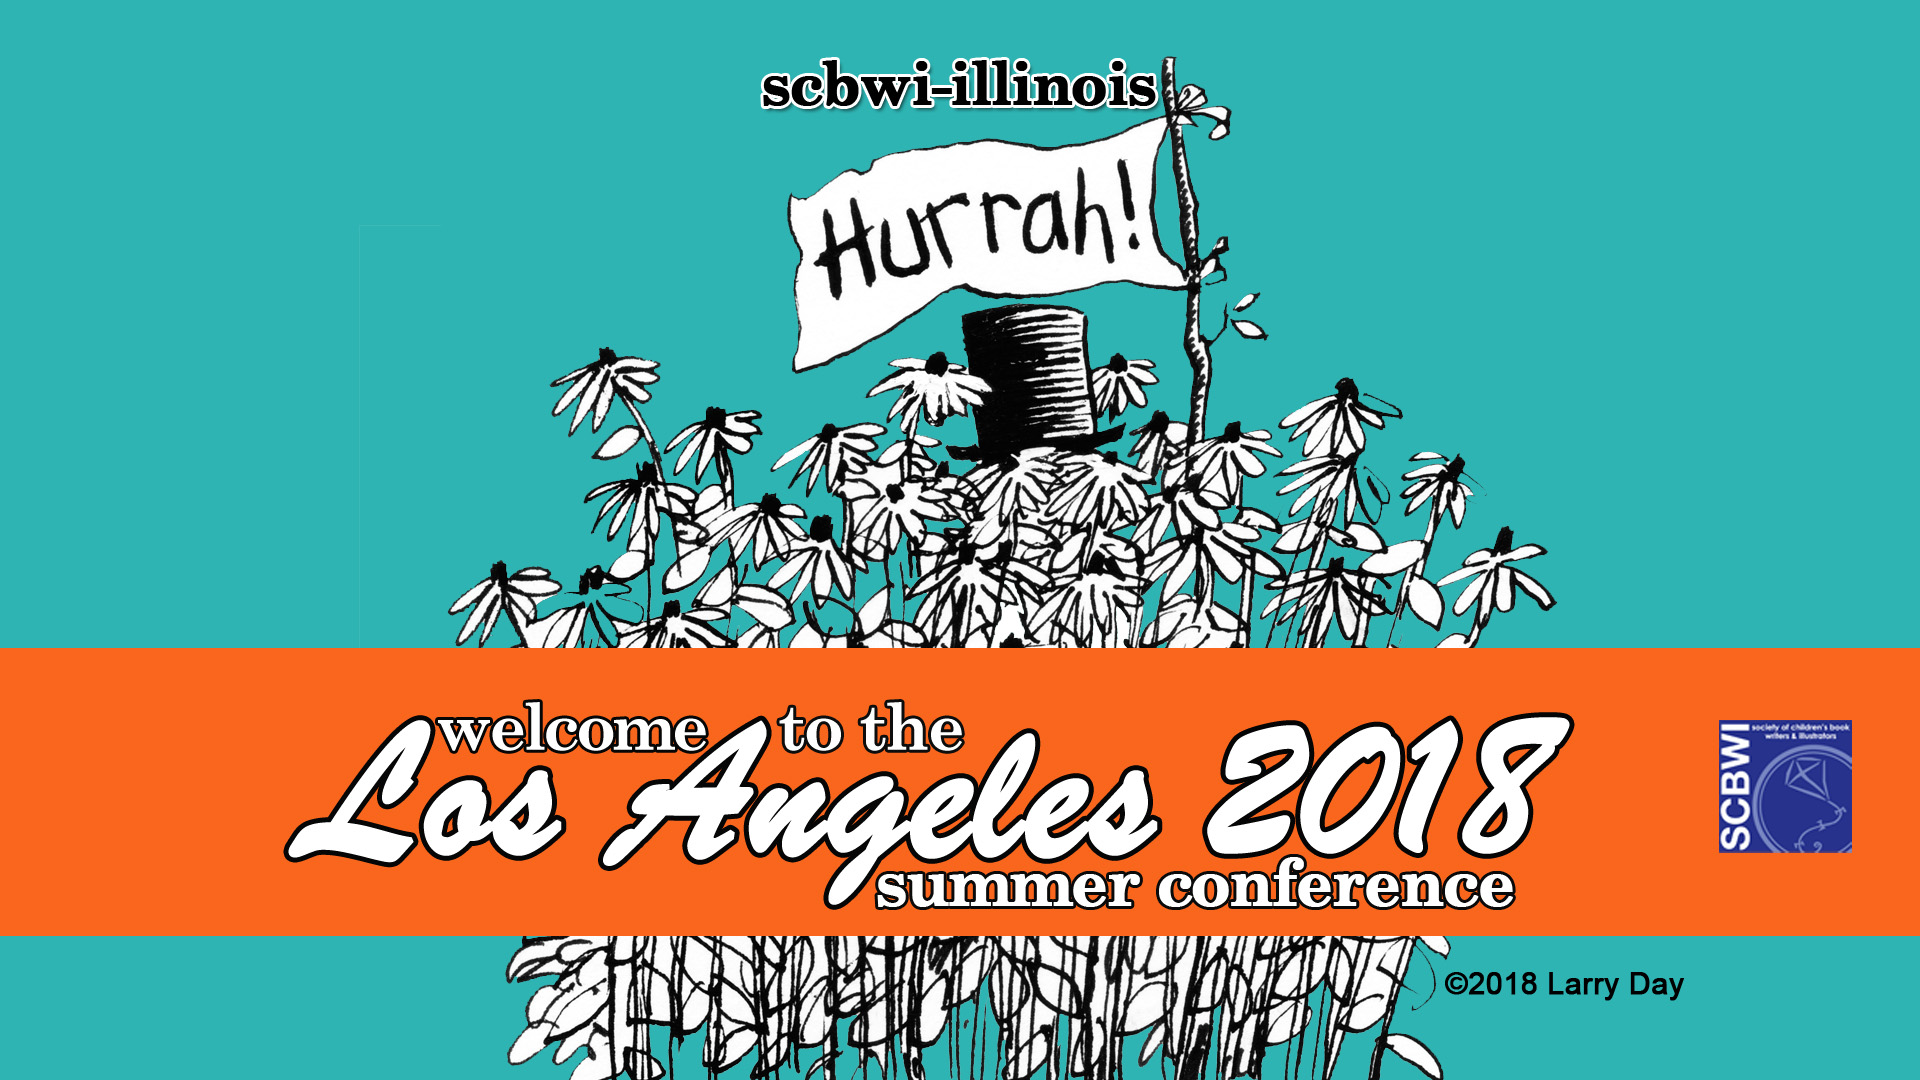 Going to the SCBWI LA 2018 Summer Conference? Check out ourFacebook Eventpage AND CONNECT before and during the conference! Go tohttps://www.scbwi.org/check-out-the-la18-summer-conference-schedule/